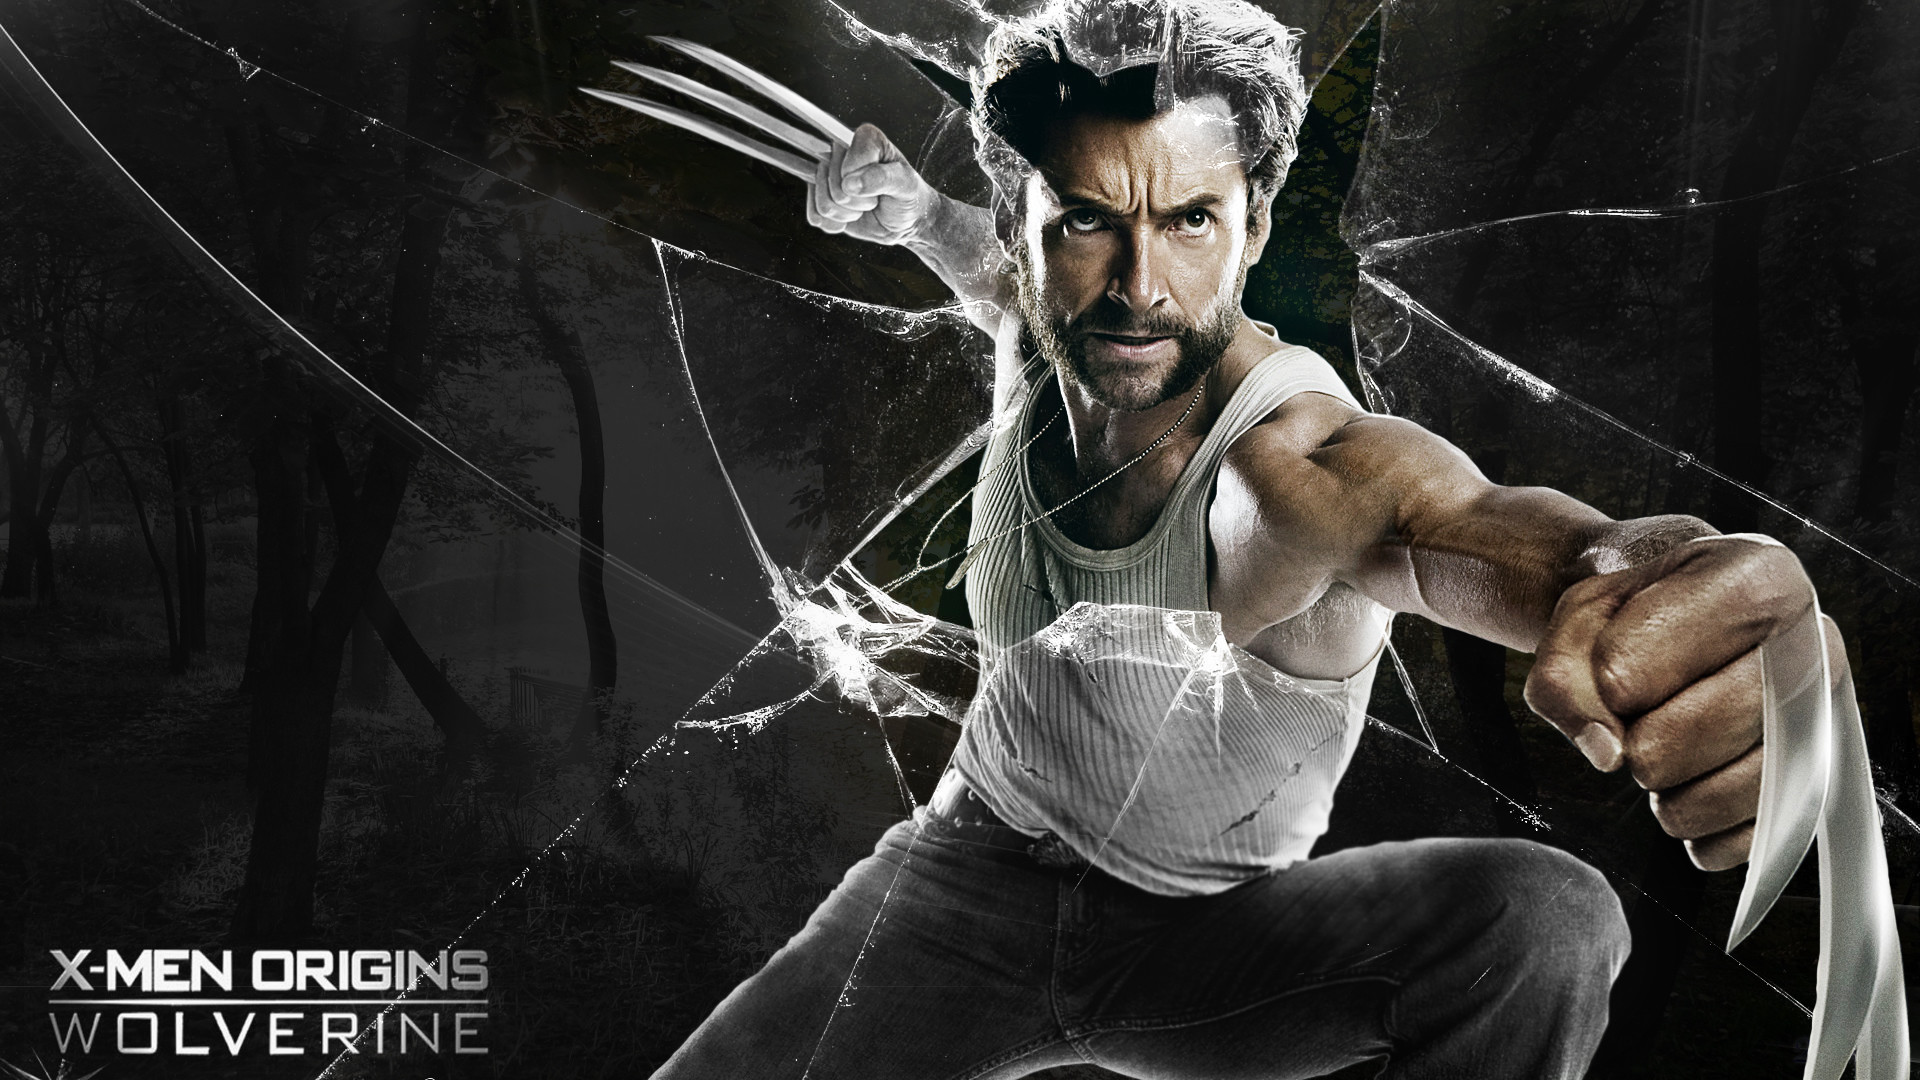 1920x1080 Wolverine Wallpaper 1080p by SKstalker on DeviantArt